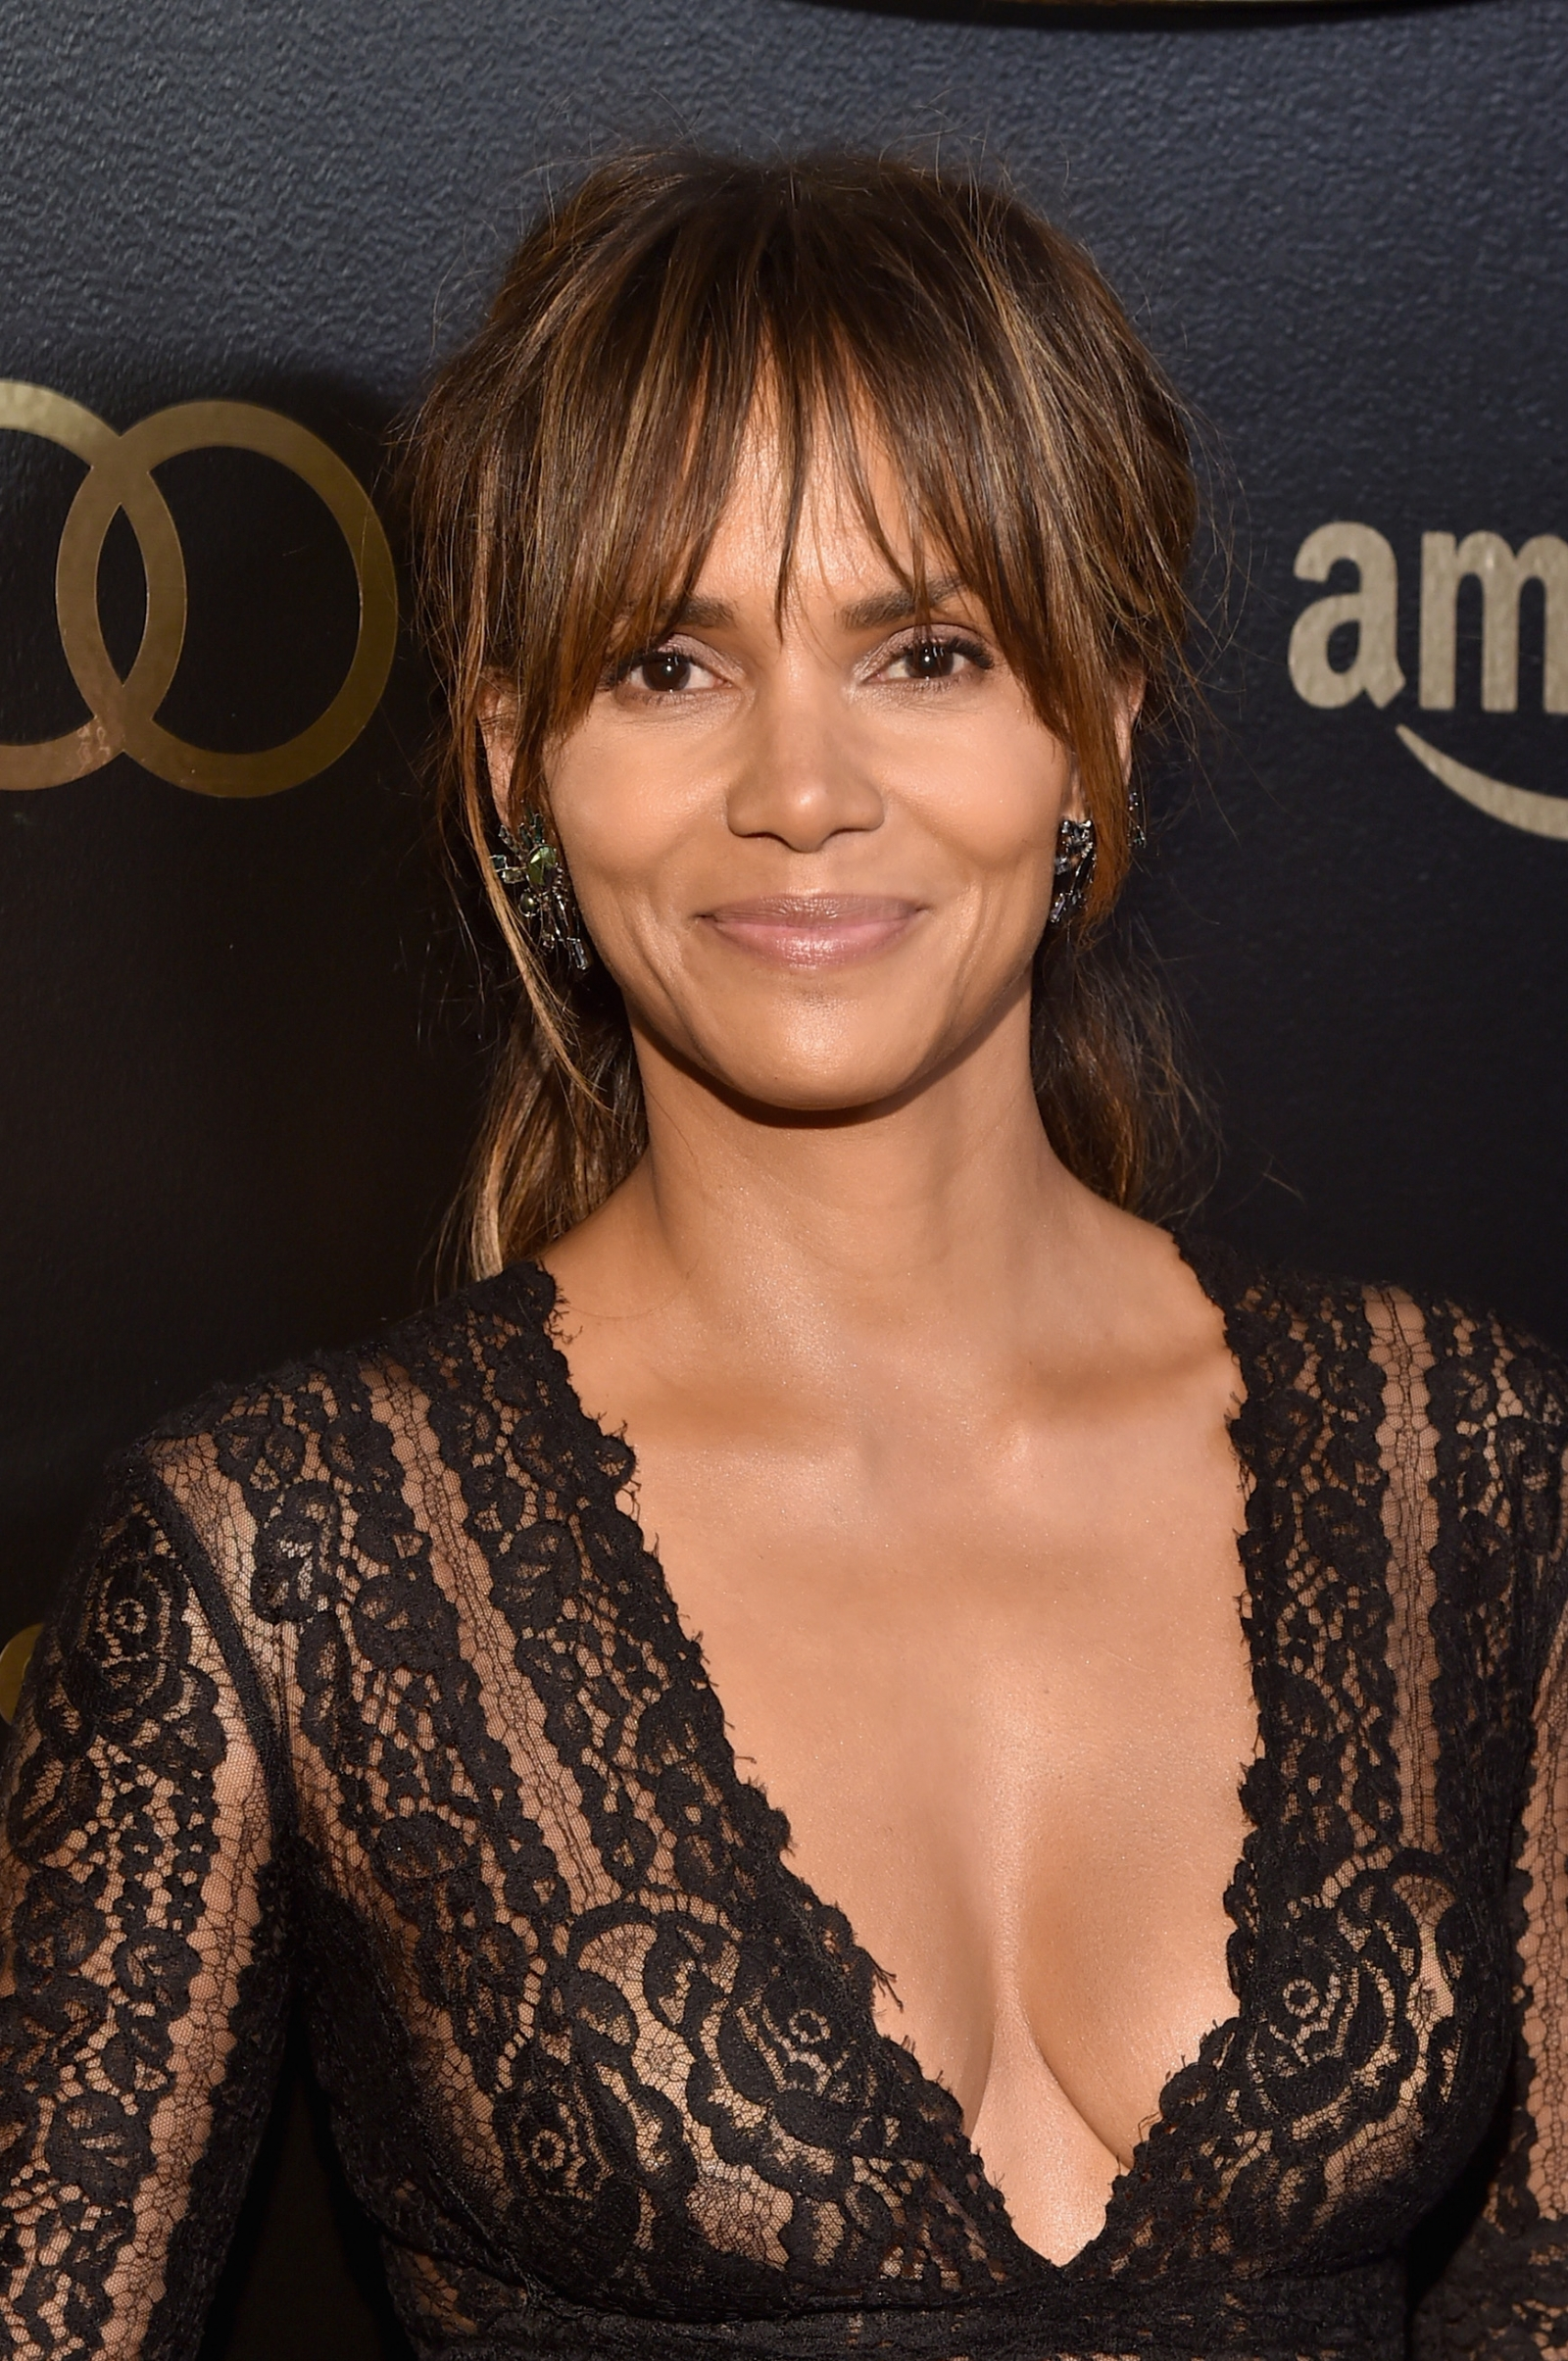 Watch Halle berry see through video